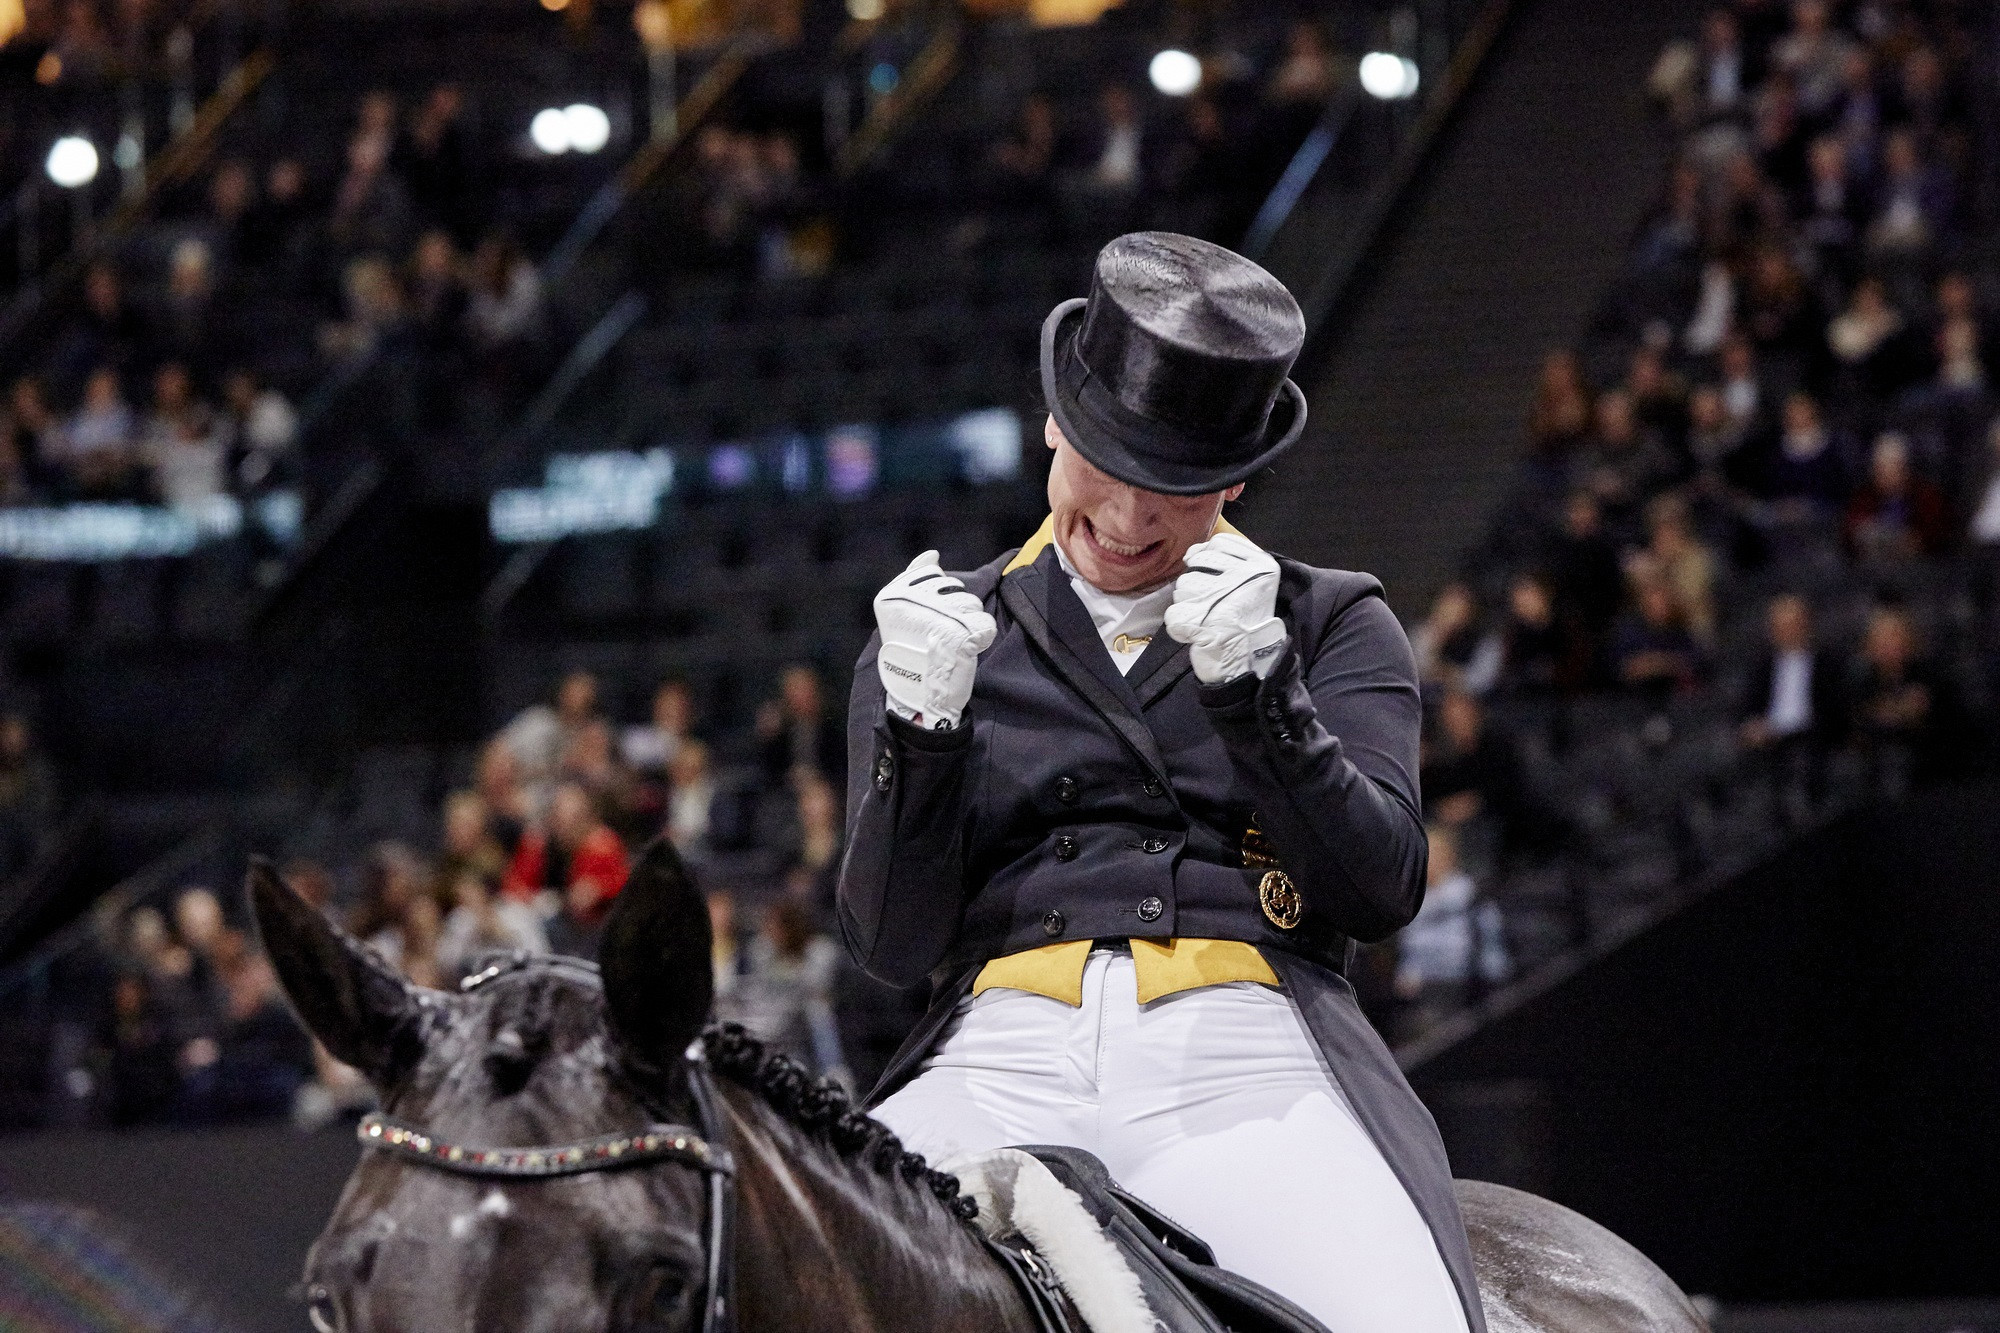 Herning to play host with FEI Dressage World Cup Western European League season set to begin